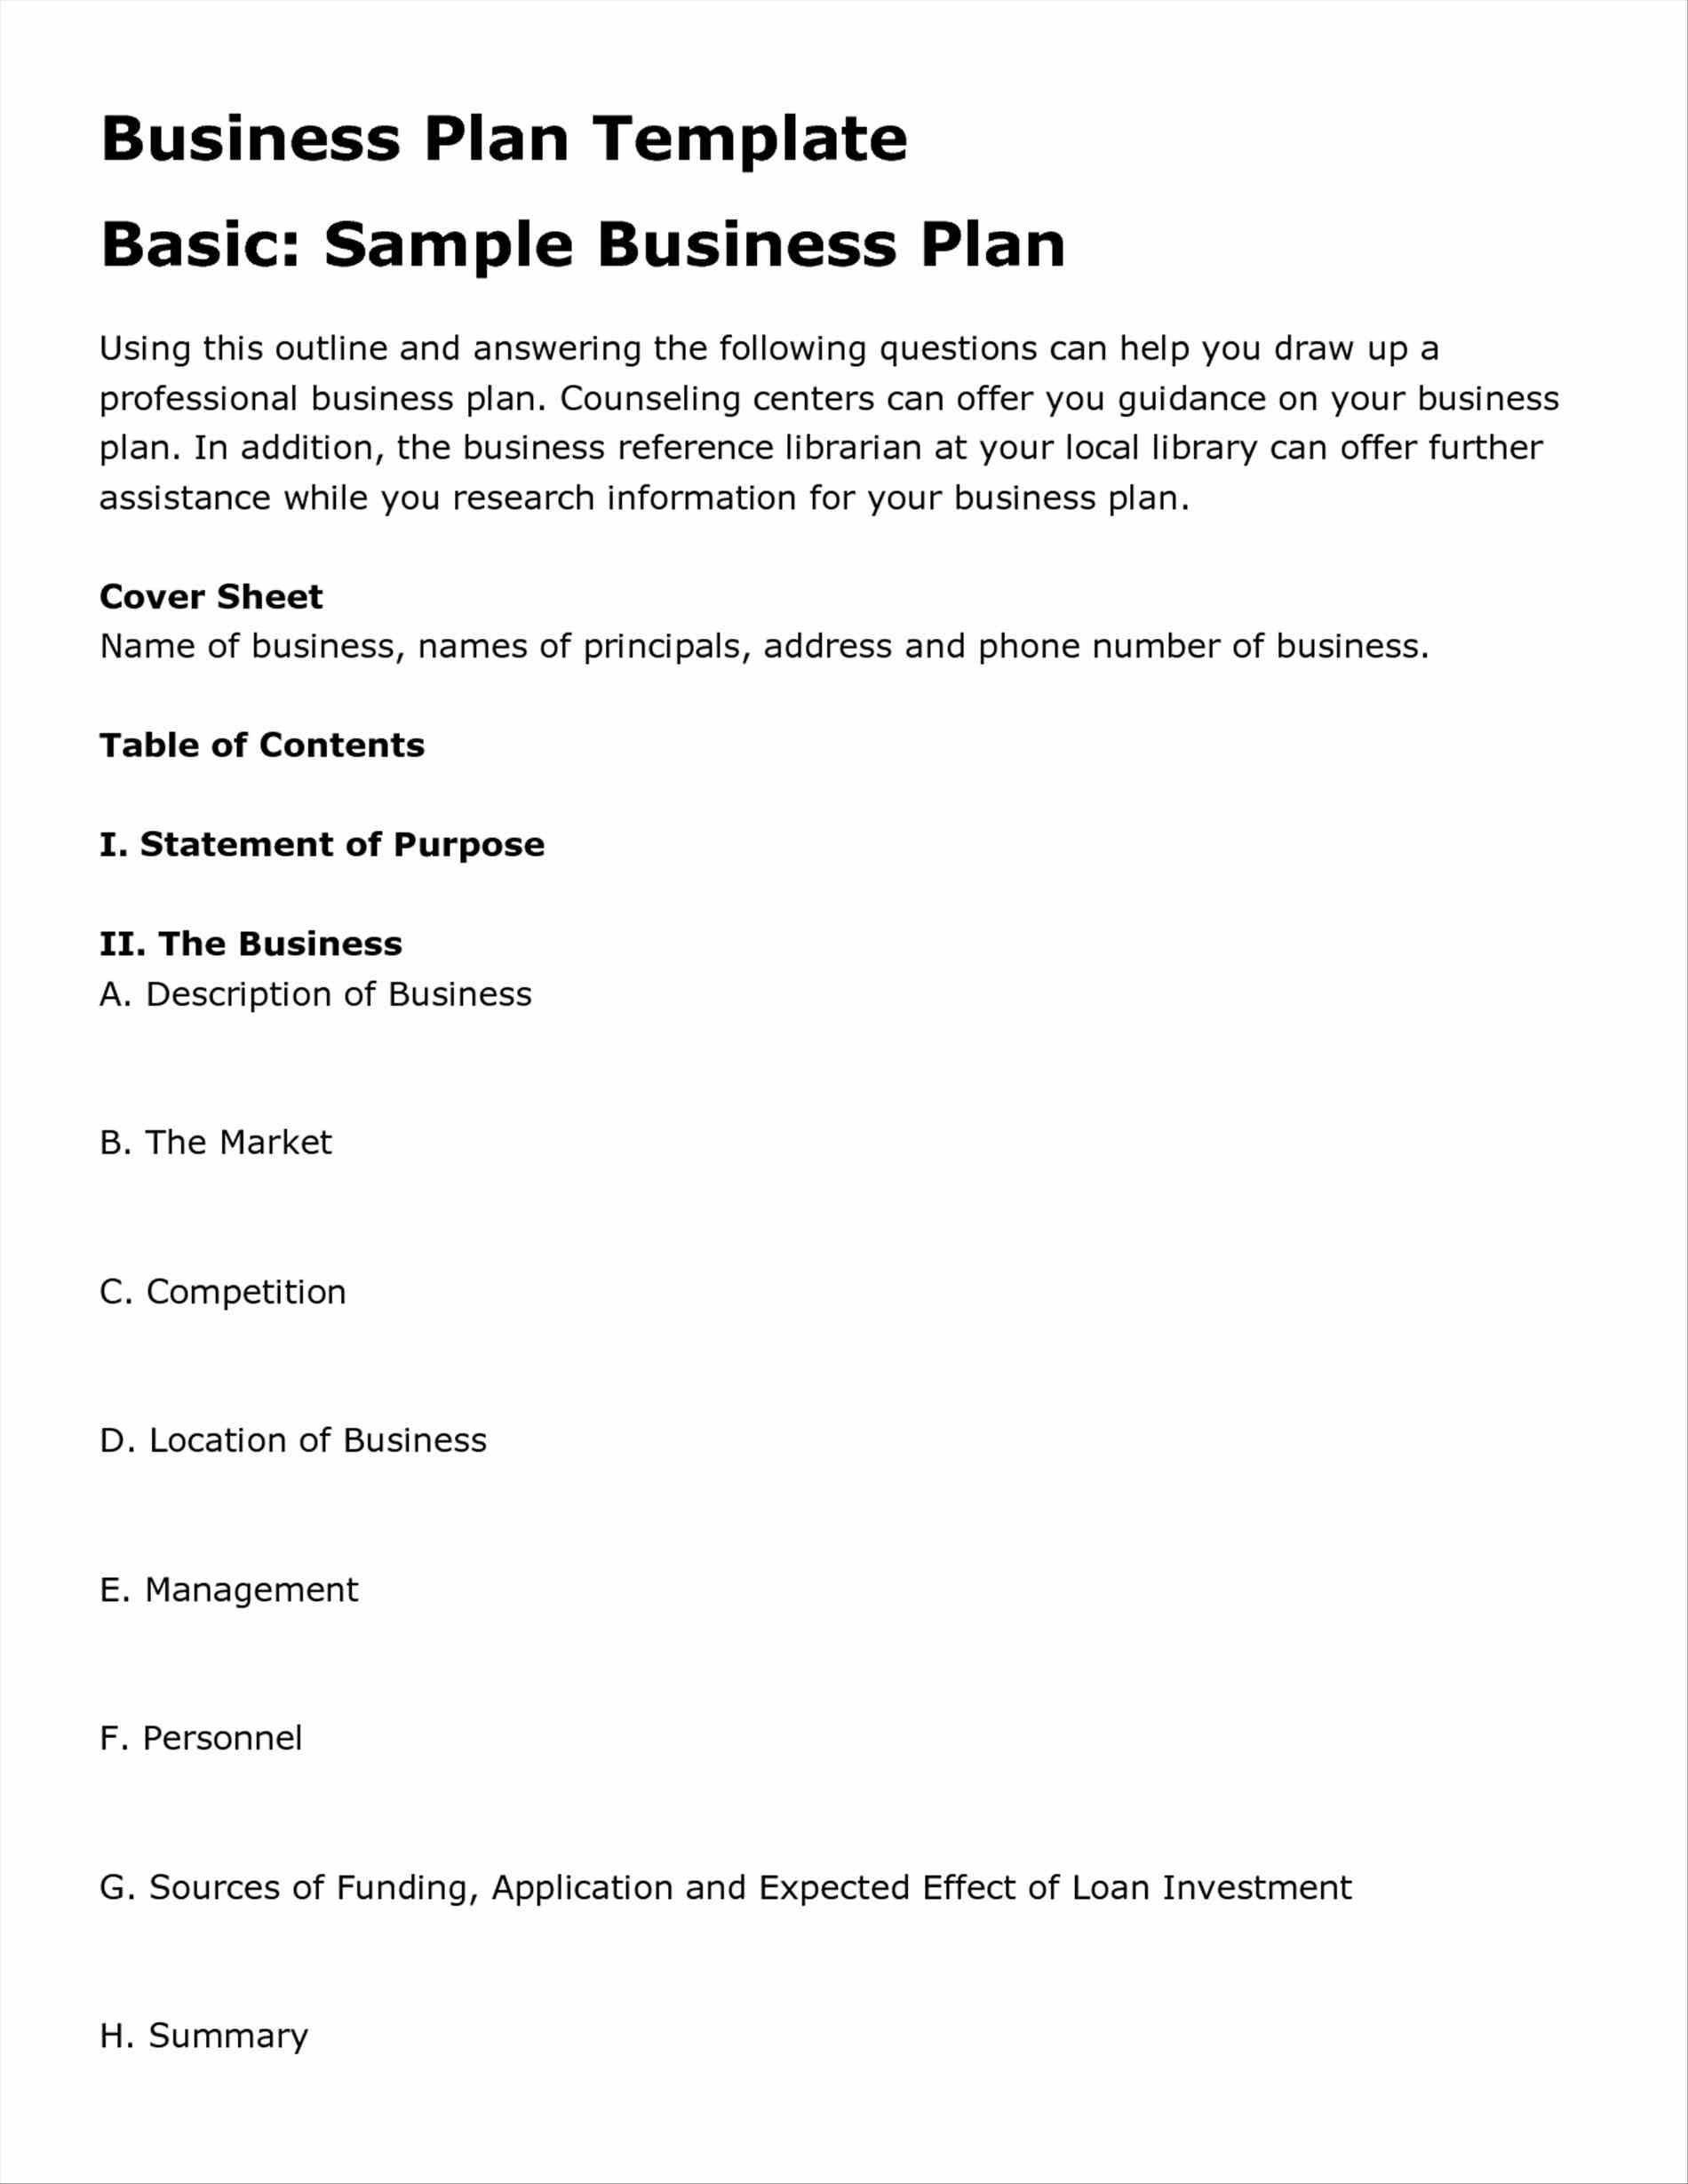 Business plan template restaurant templates in word excel pdf free business plan template restaurant templates in word excel pdf free cafe business plan template restaurant business plan templates in word excel flashek Images